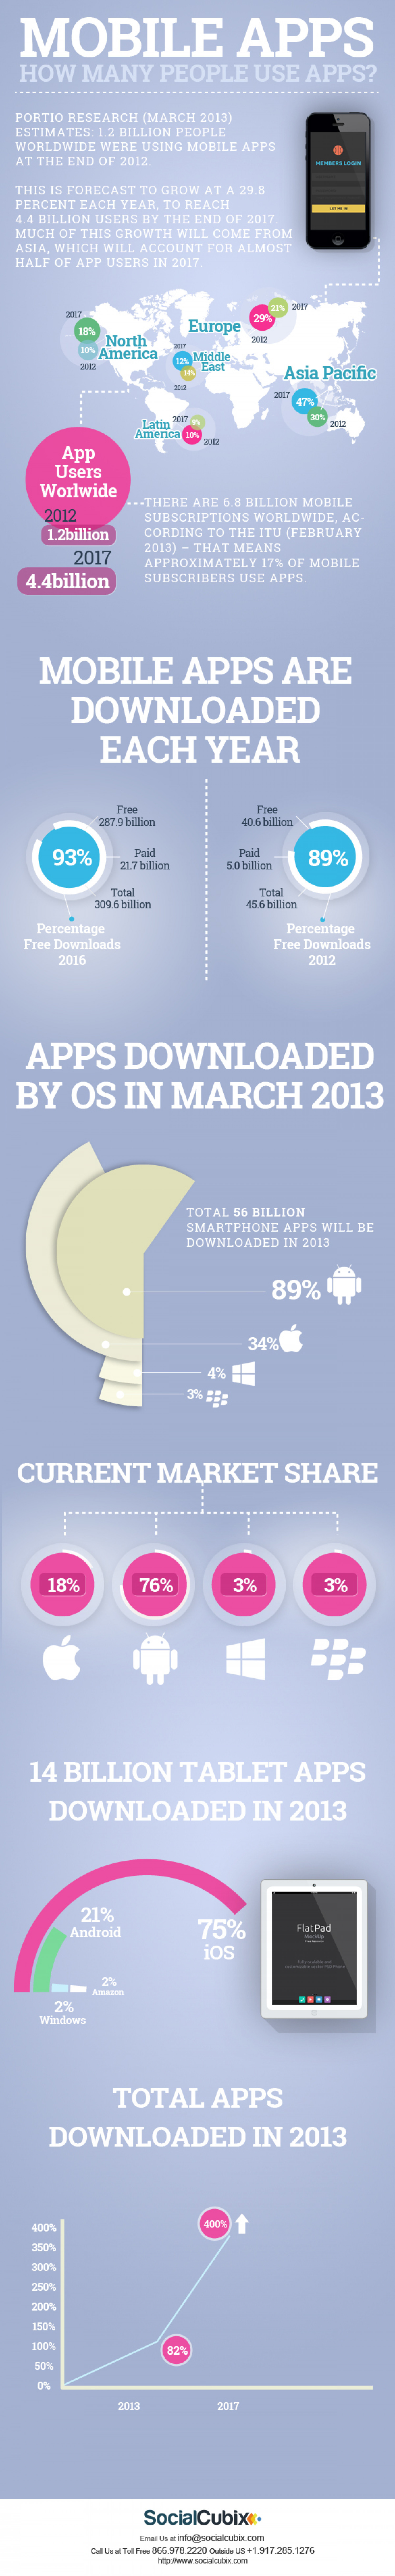 Mobile Apps: how many people use apps? Infographic